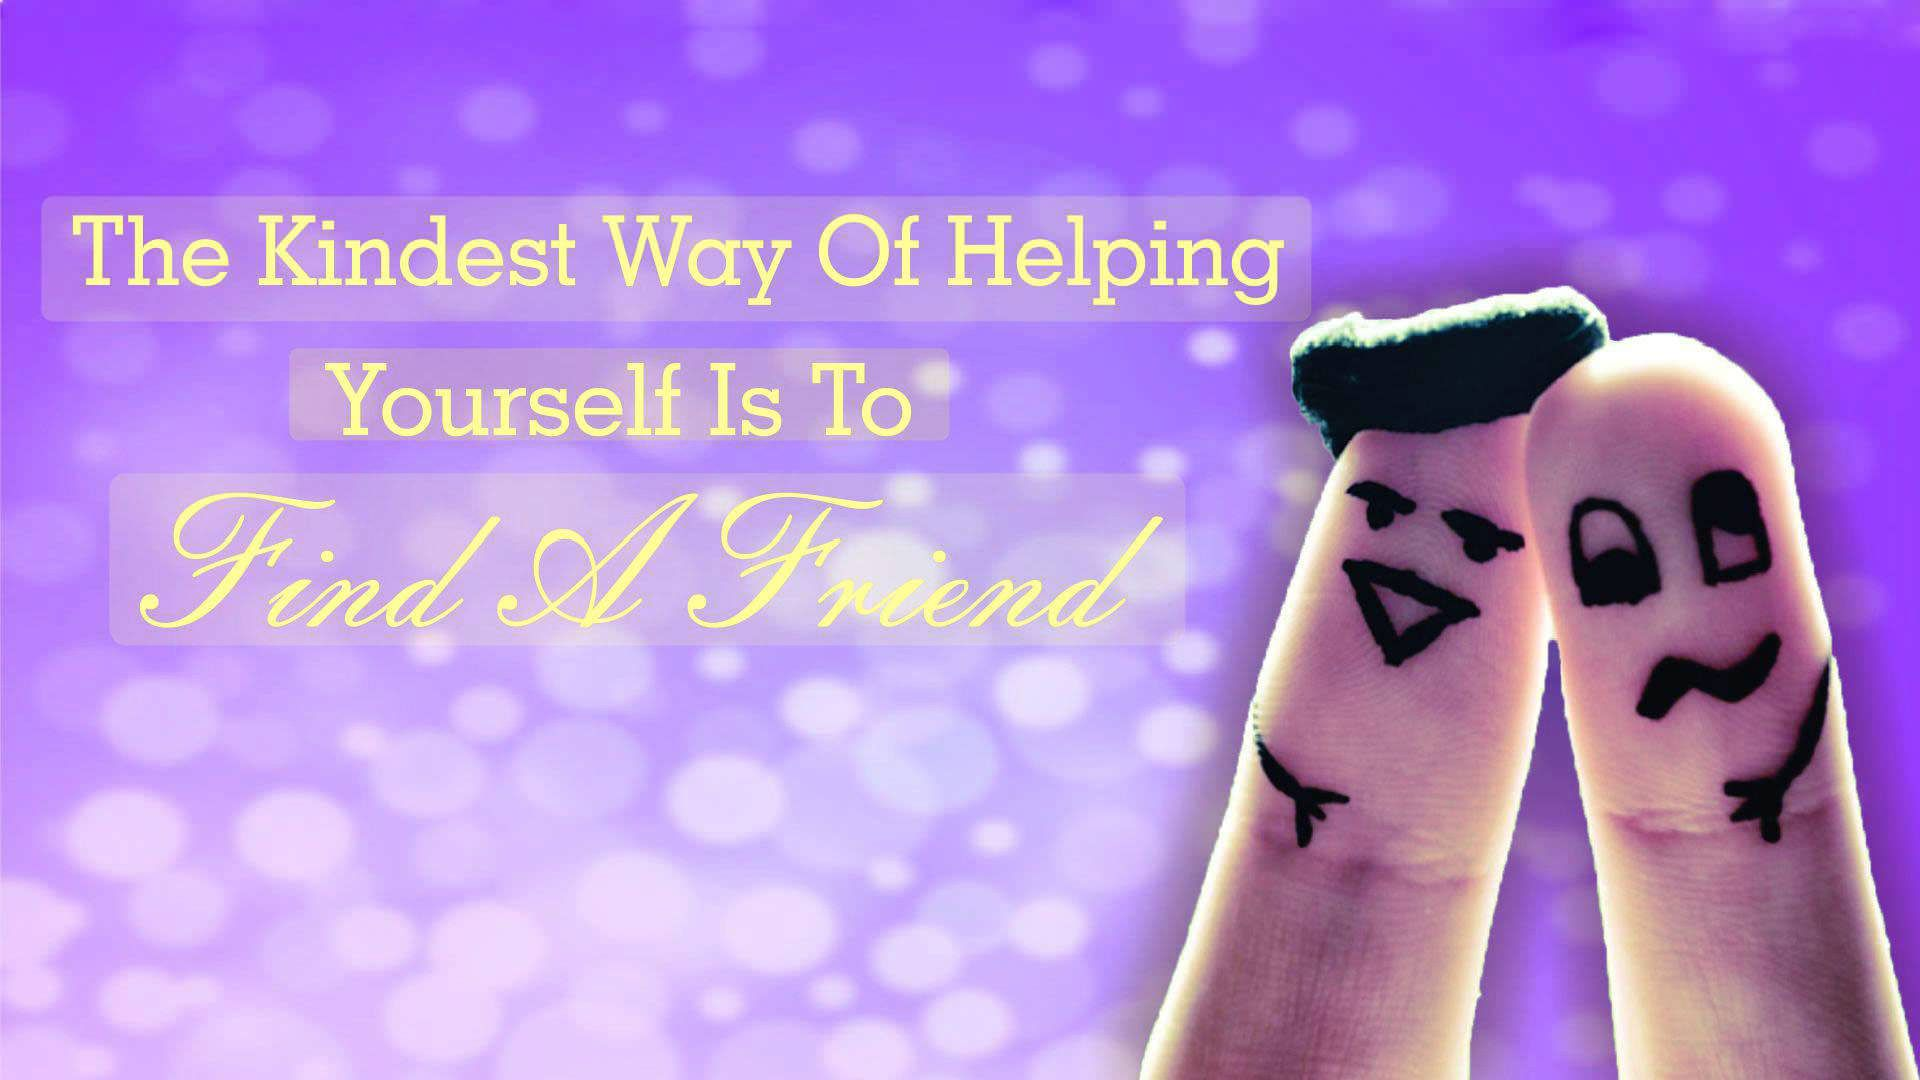 Happy friendship day images happy friendship day pinterest happy friendship day images altavistaventures Images